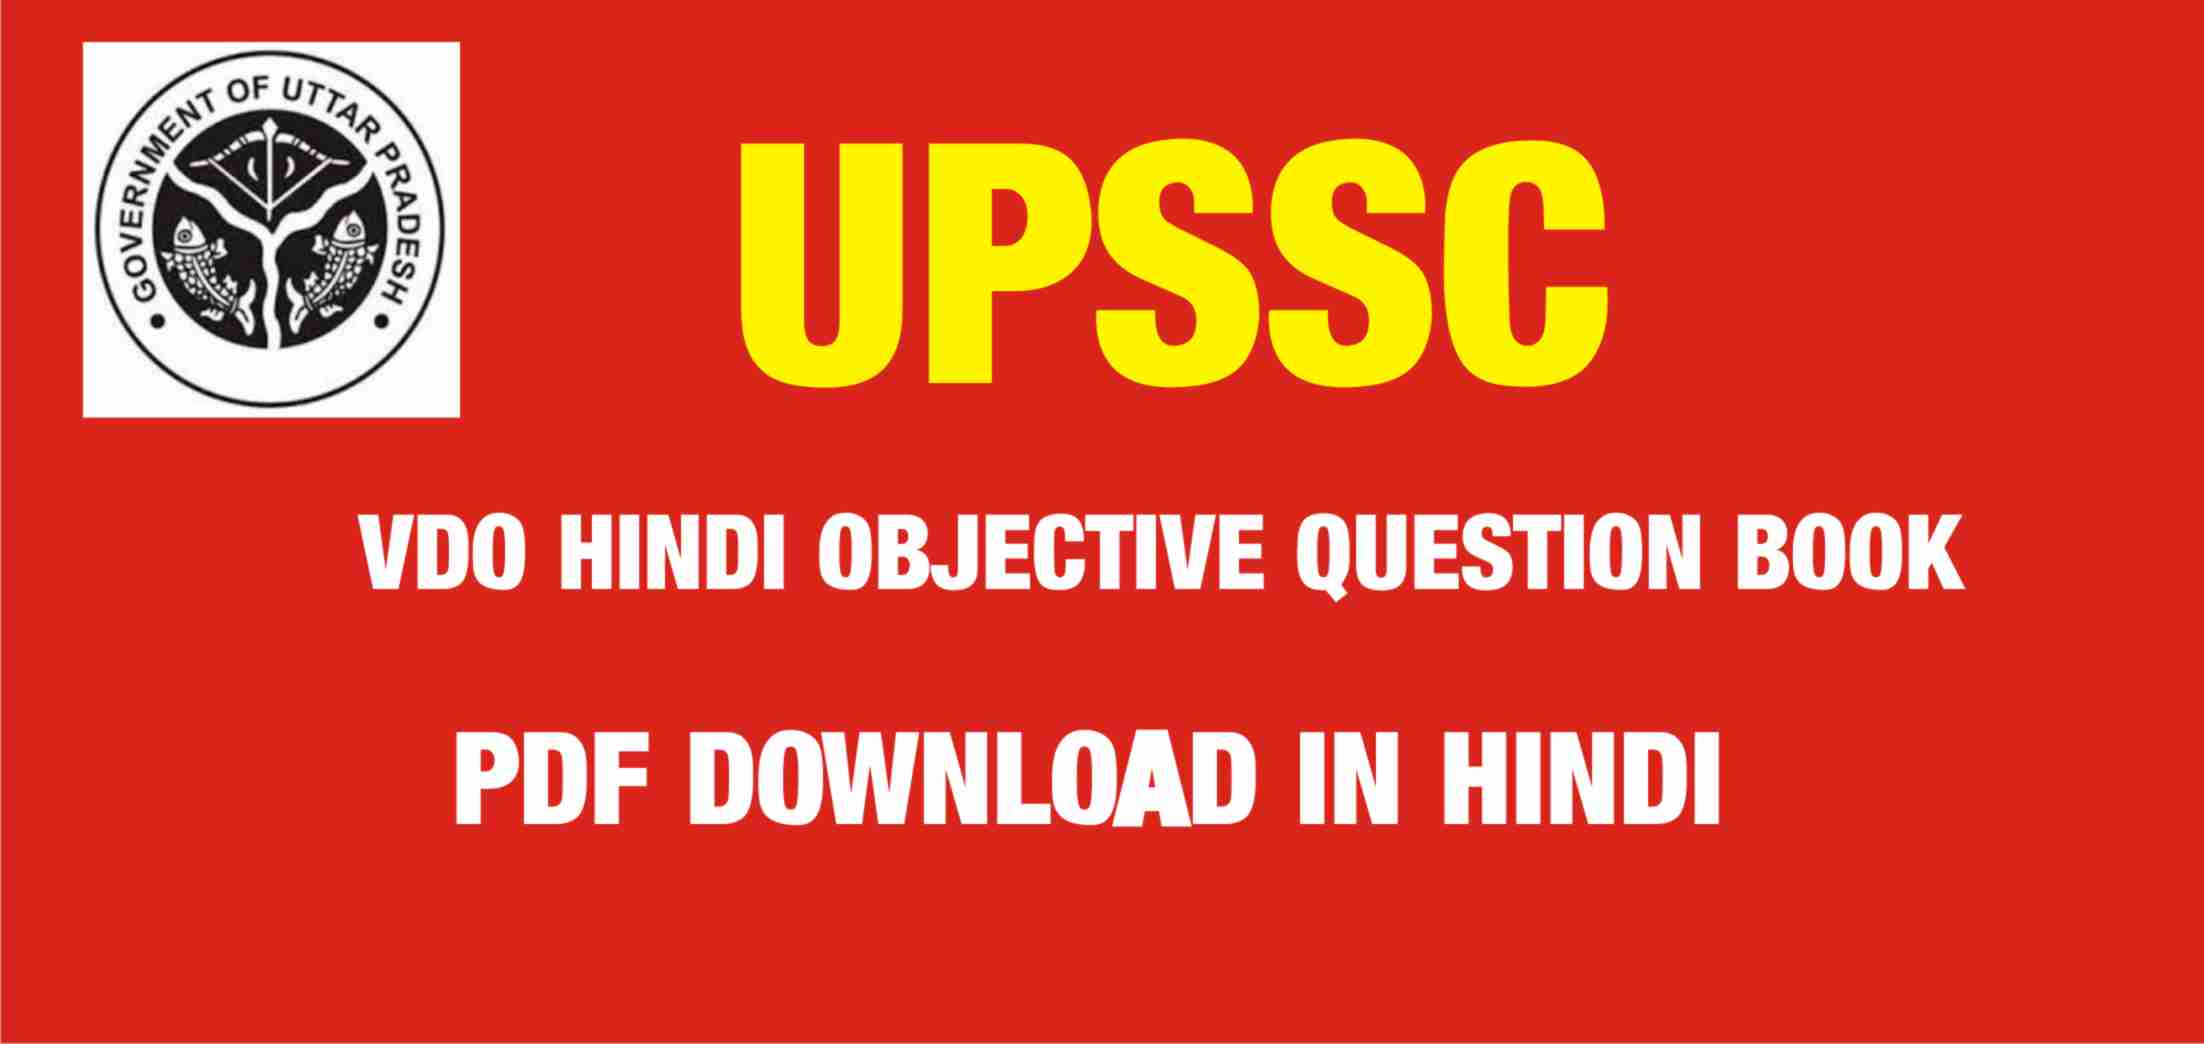 (Samiksha Adhikari) VDO HINDI OBJECTIVE QUESTION BOOK PDF DOWNLOAD